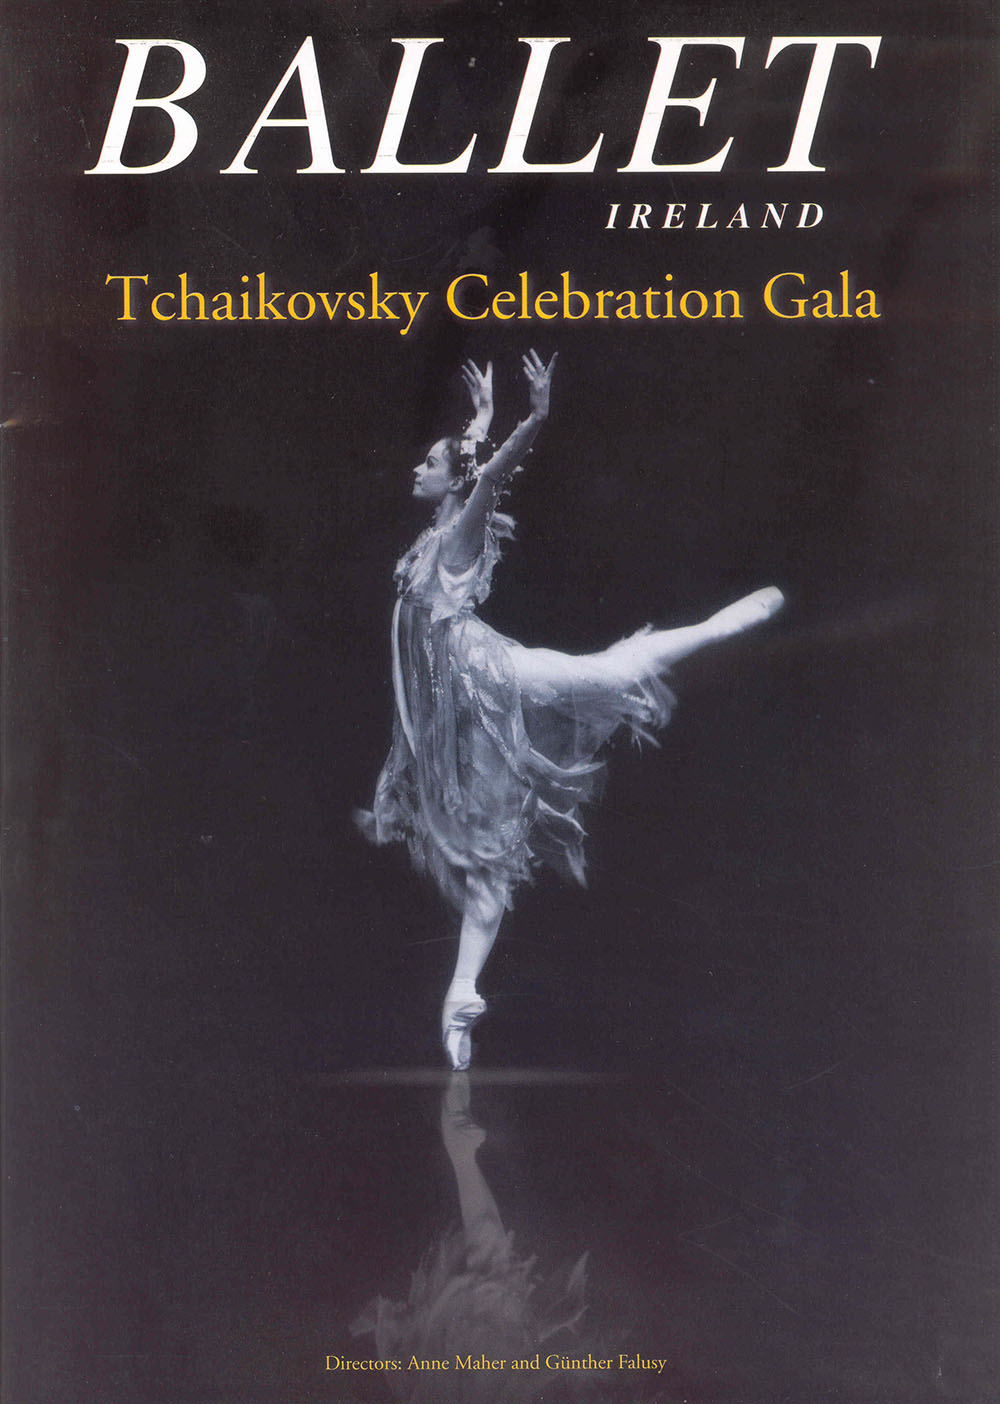 black-and-white poster advertising the Tchaikovsky Celebration Gala performed by Ballet Ireland, featuring artwork of a dancing ballerina